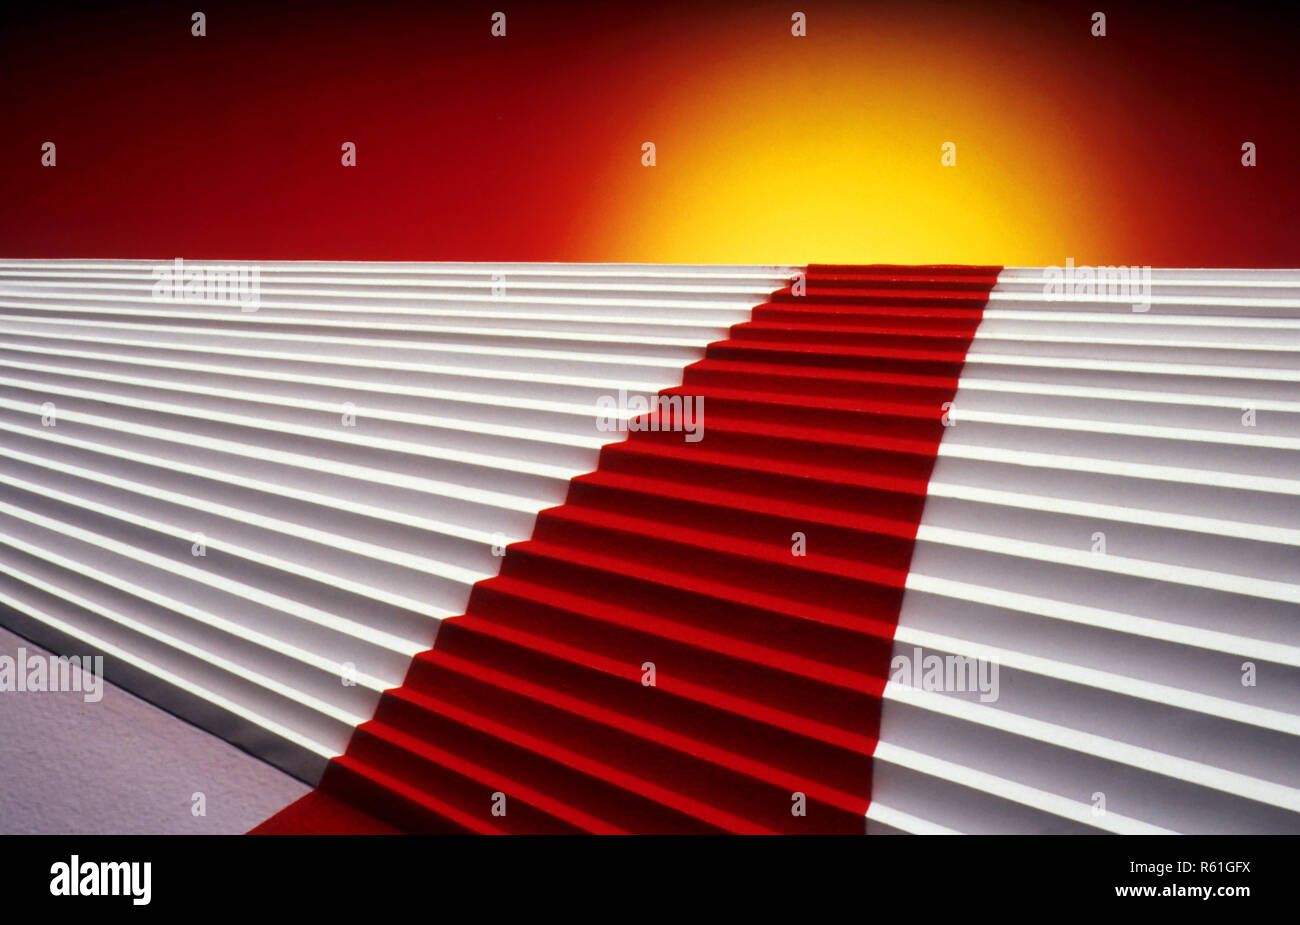 Red Carpet on Stairs - Stock Image